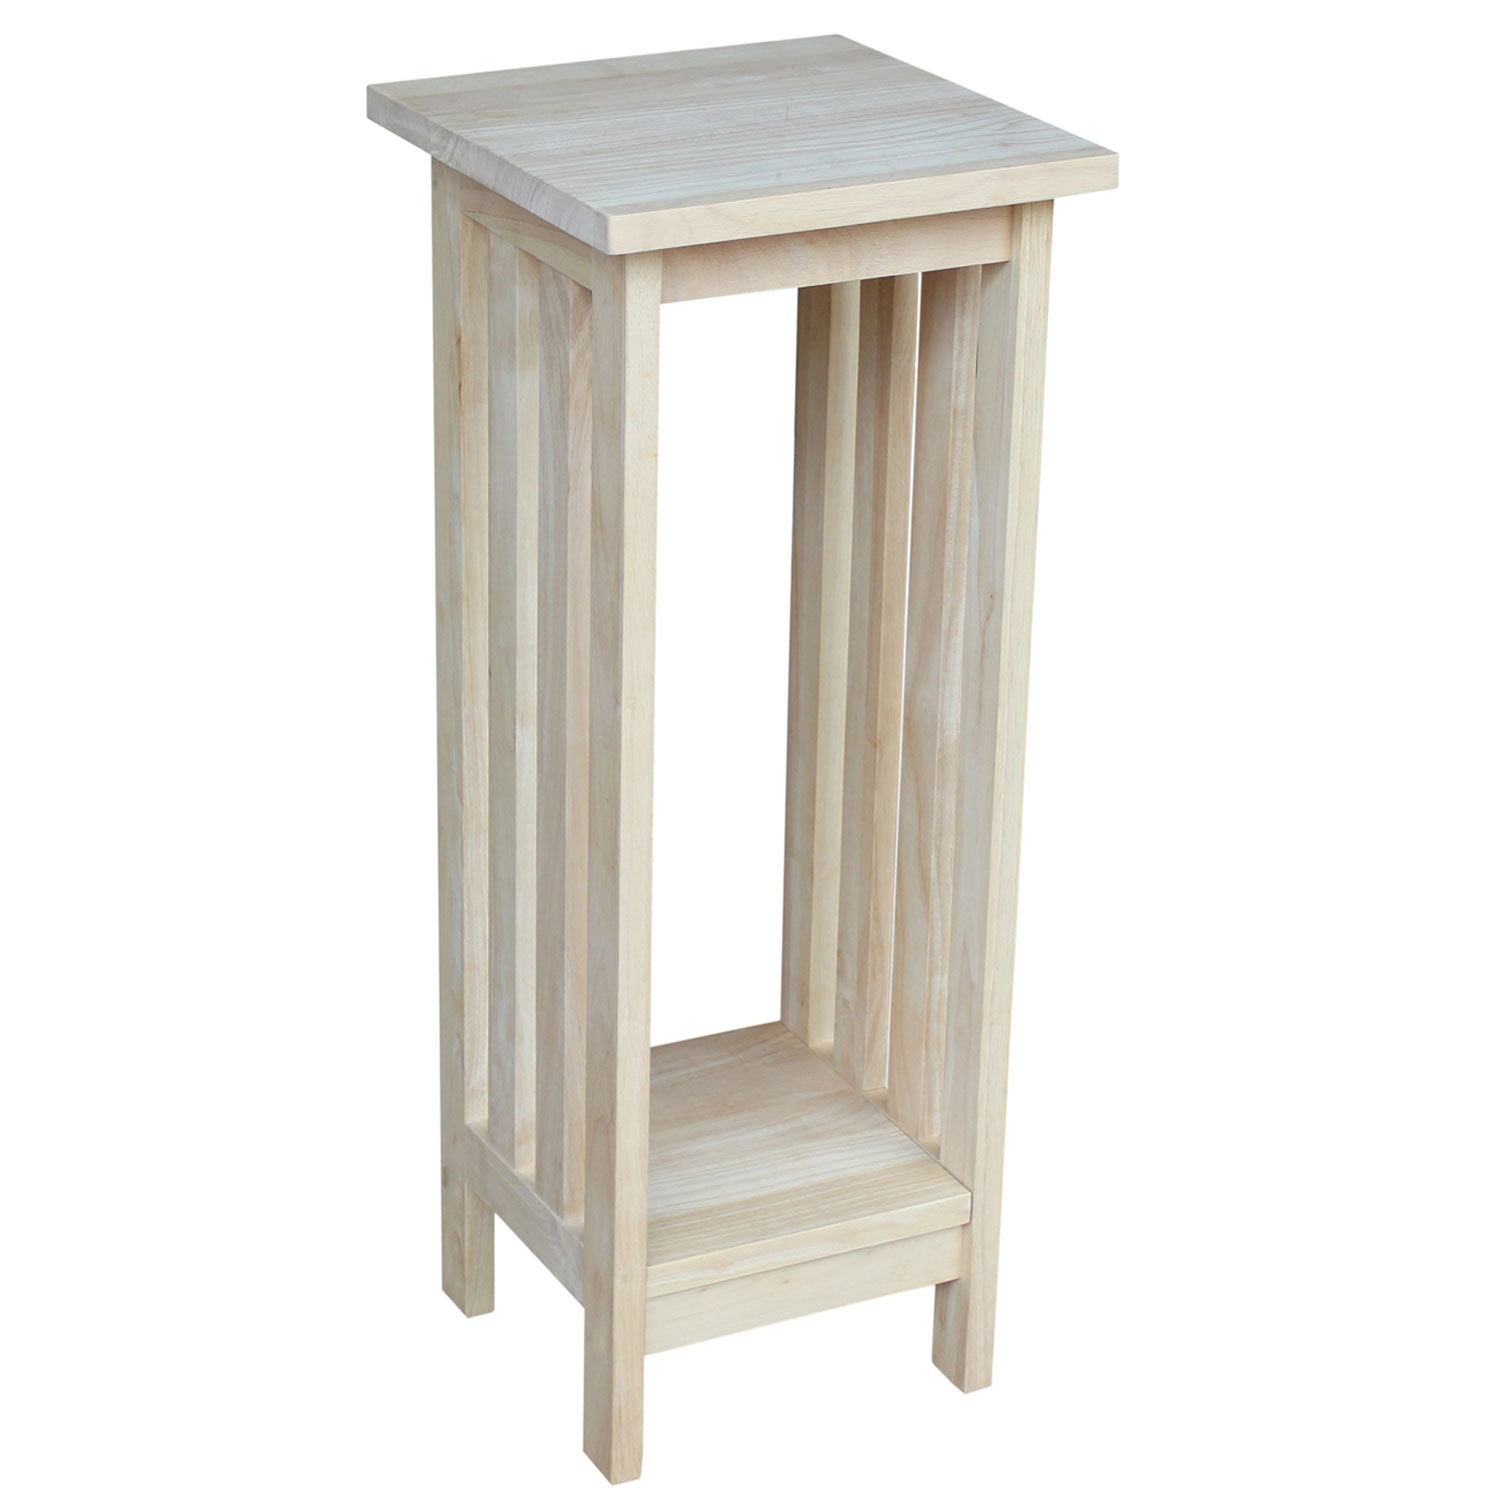 international concepts mission unfinished inch wood plant stand patio umbrella accent table hover zoom small metal legs outdoor dining chairs bunnings distressed blue coffee end